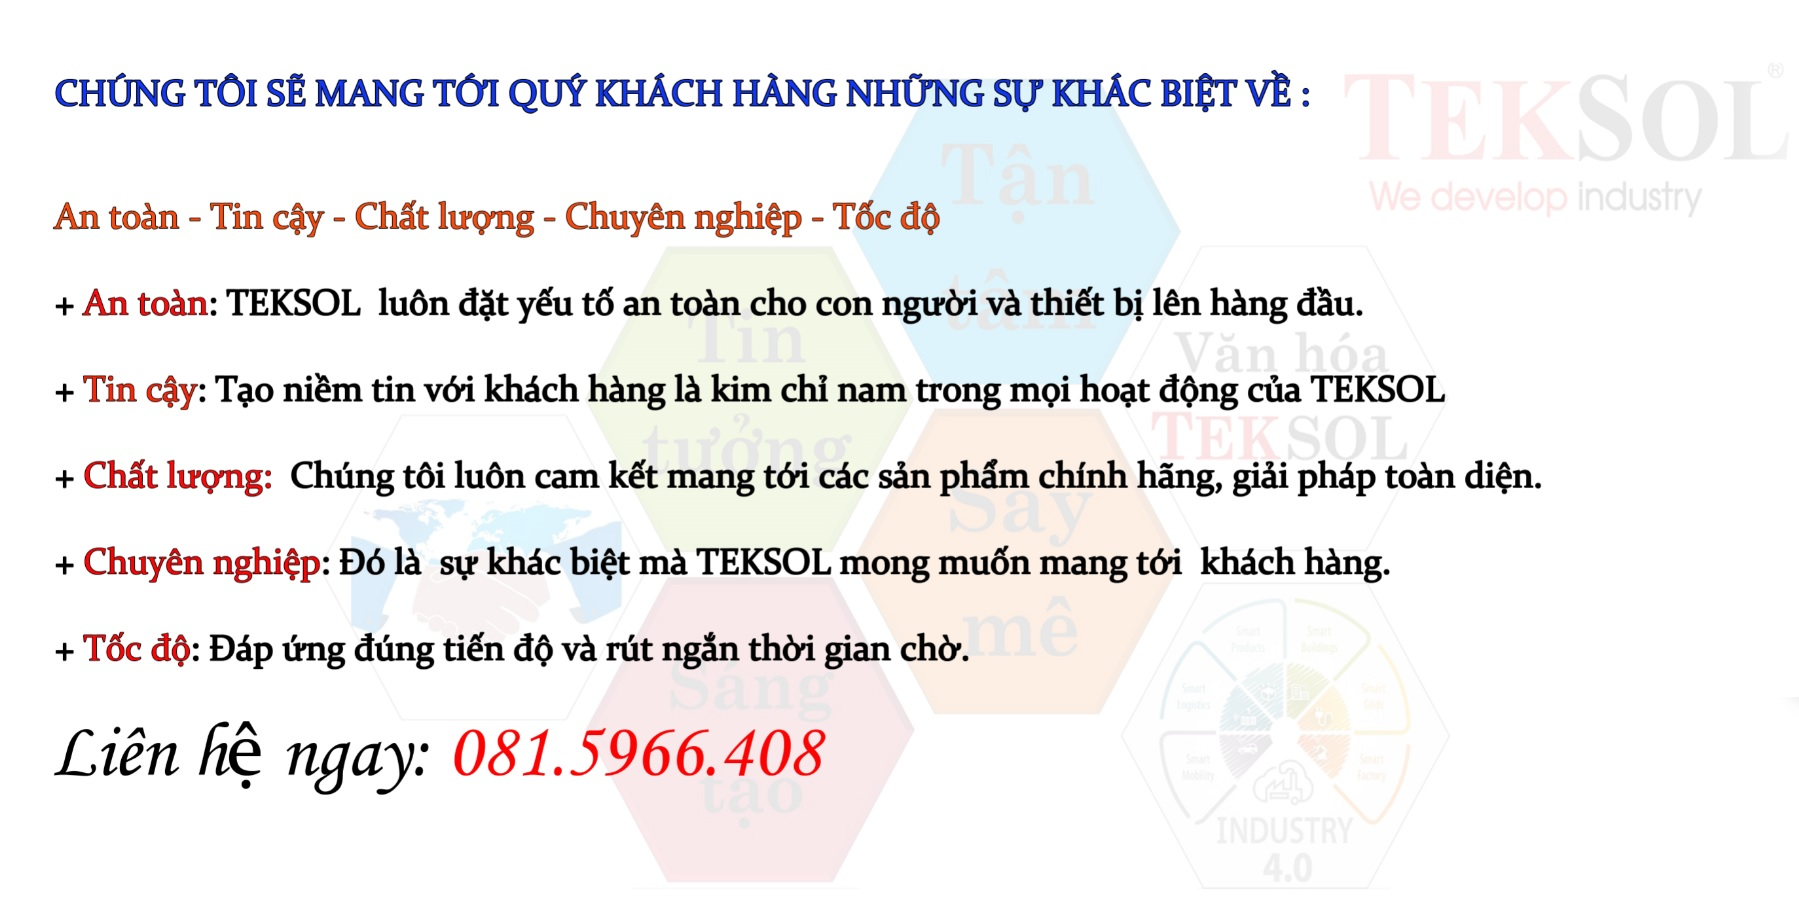 an toan tin cay chat luong